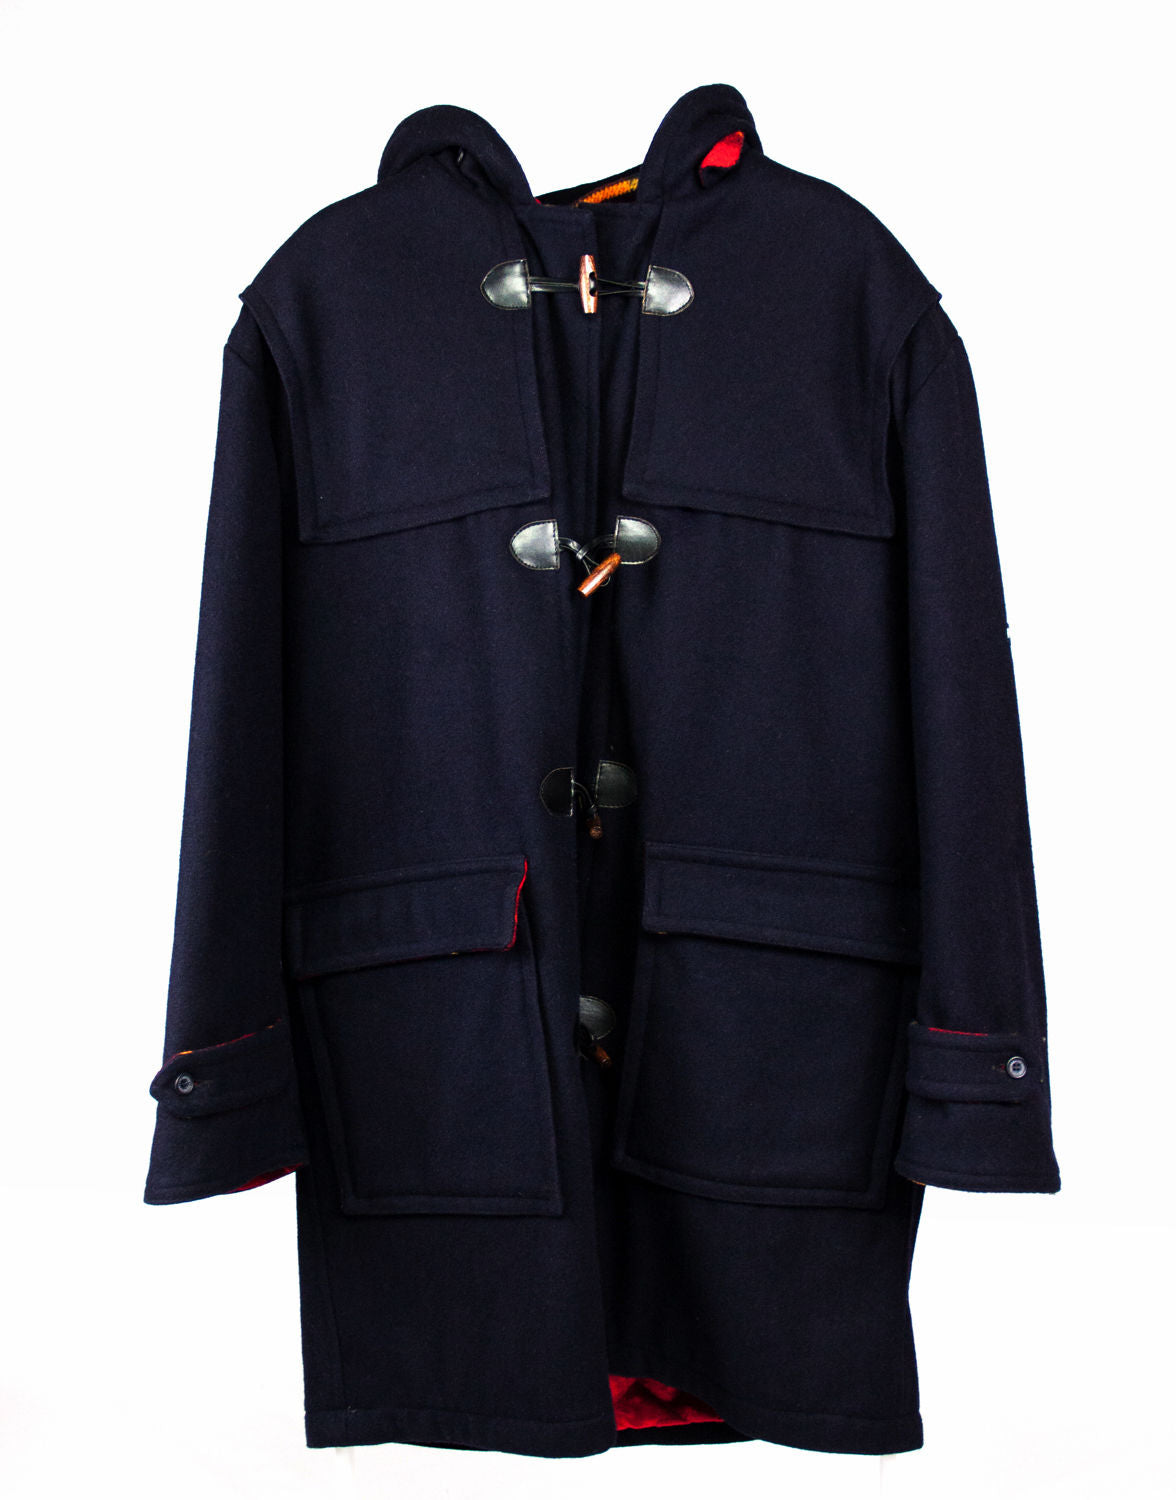 IVY OXFORD Navy Blue Wool Duffle Coat USA 42, EUR 52 - second_first